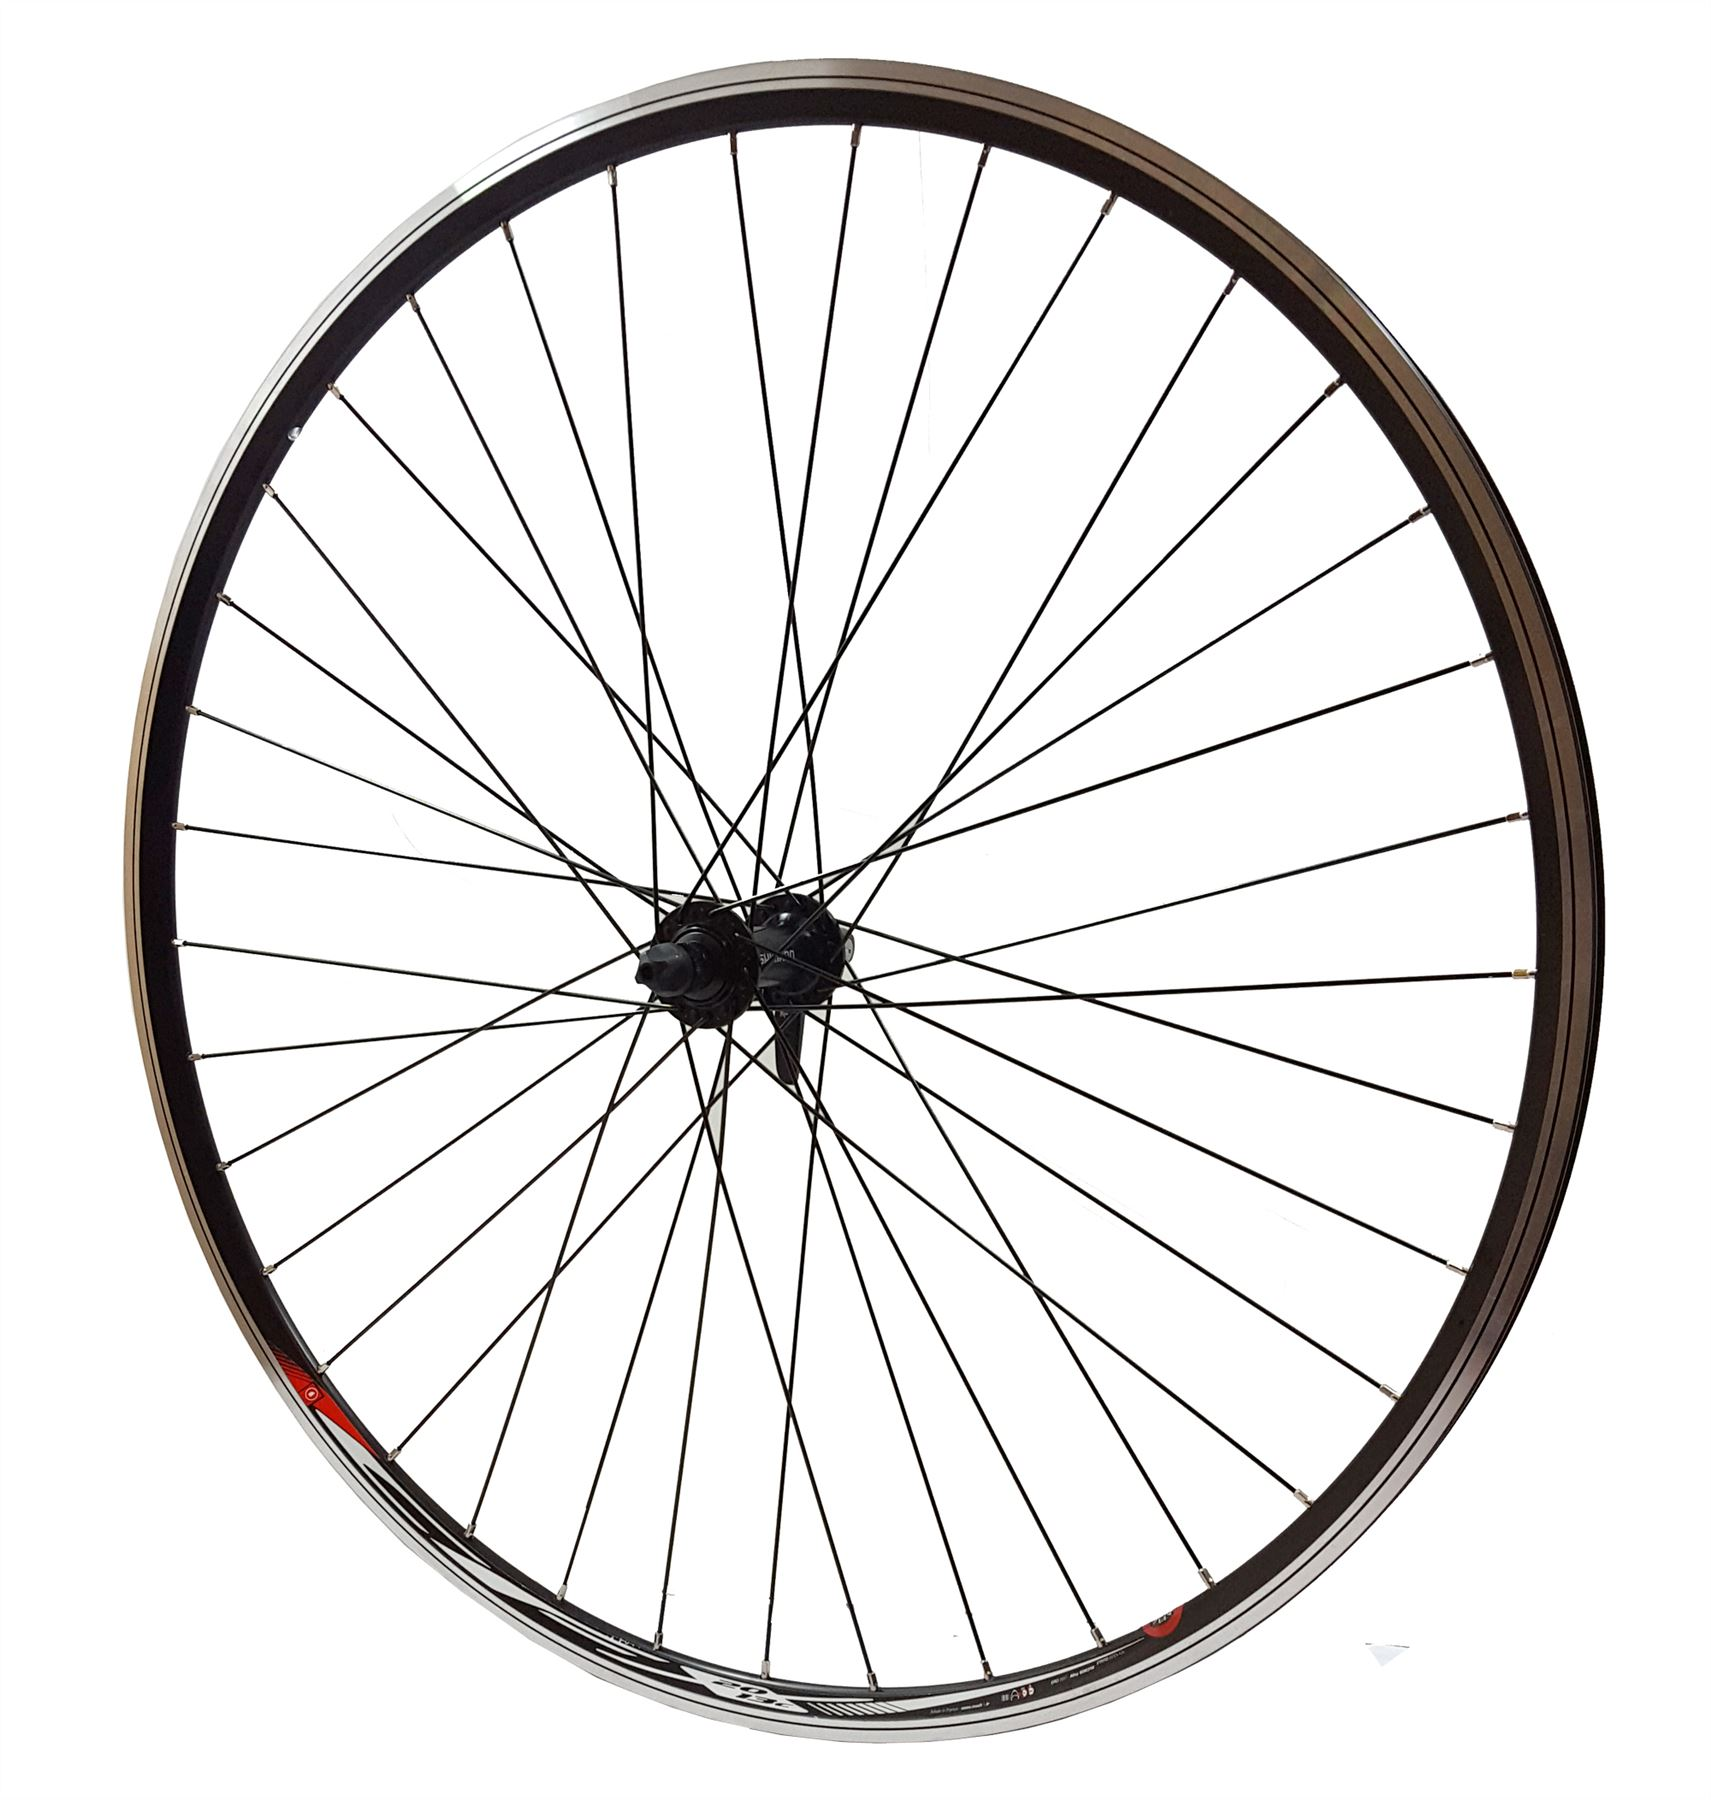 700c Road Bicycle Wheel Front Shimano Tiagra Hub Mach Cfx